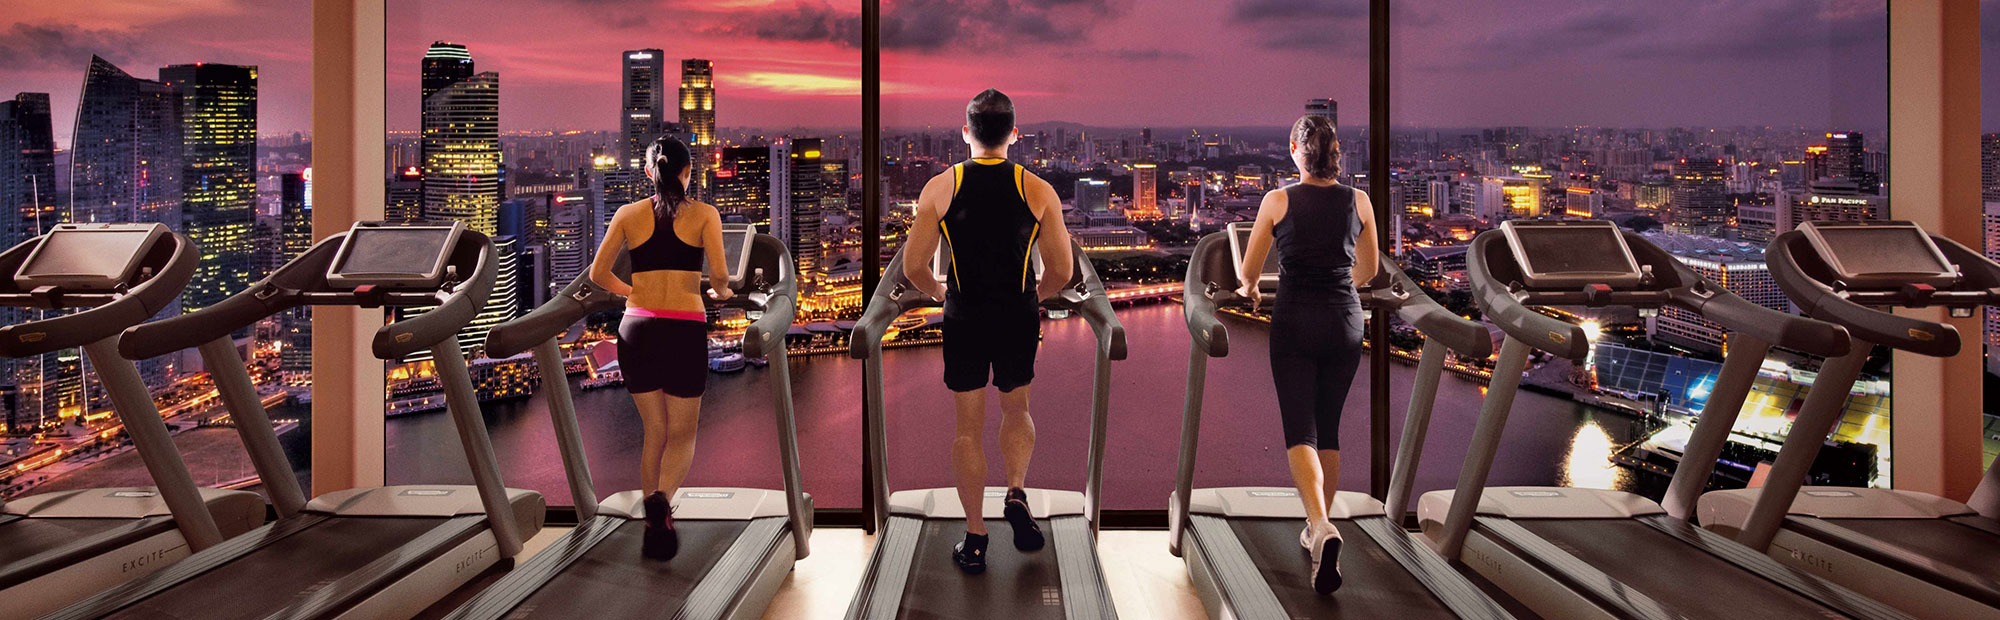 Banyan Tree Fitness Club with Singapore City View